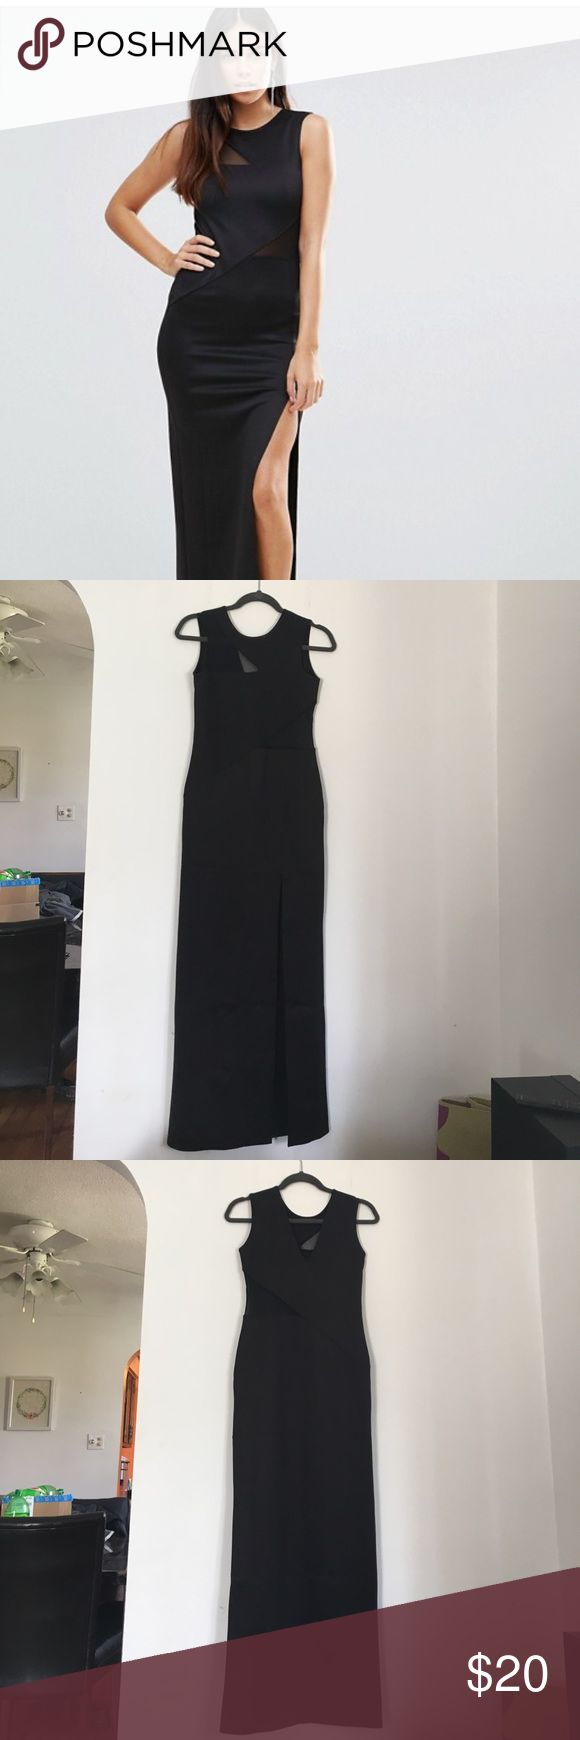 Asos Black Maxi Dress TFBC London sold by ASOS long fitted dress with mesh cut out accents and front slit. Size M. ASOS Dresses Maxi